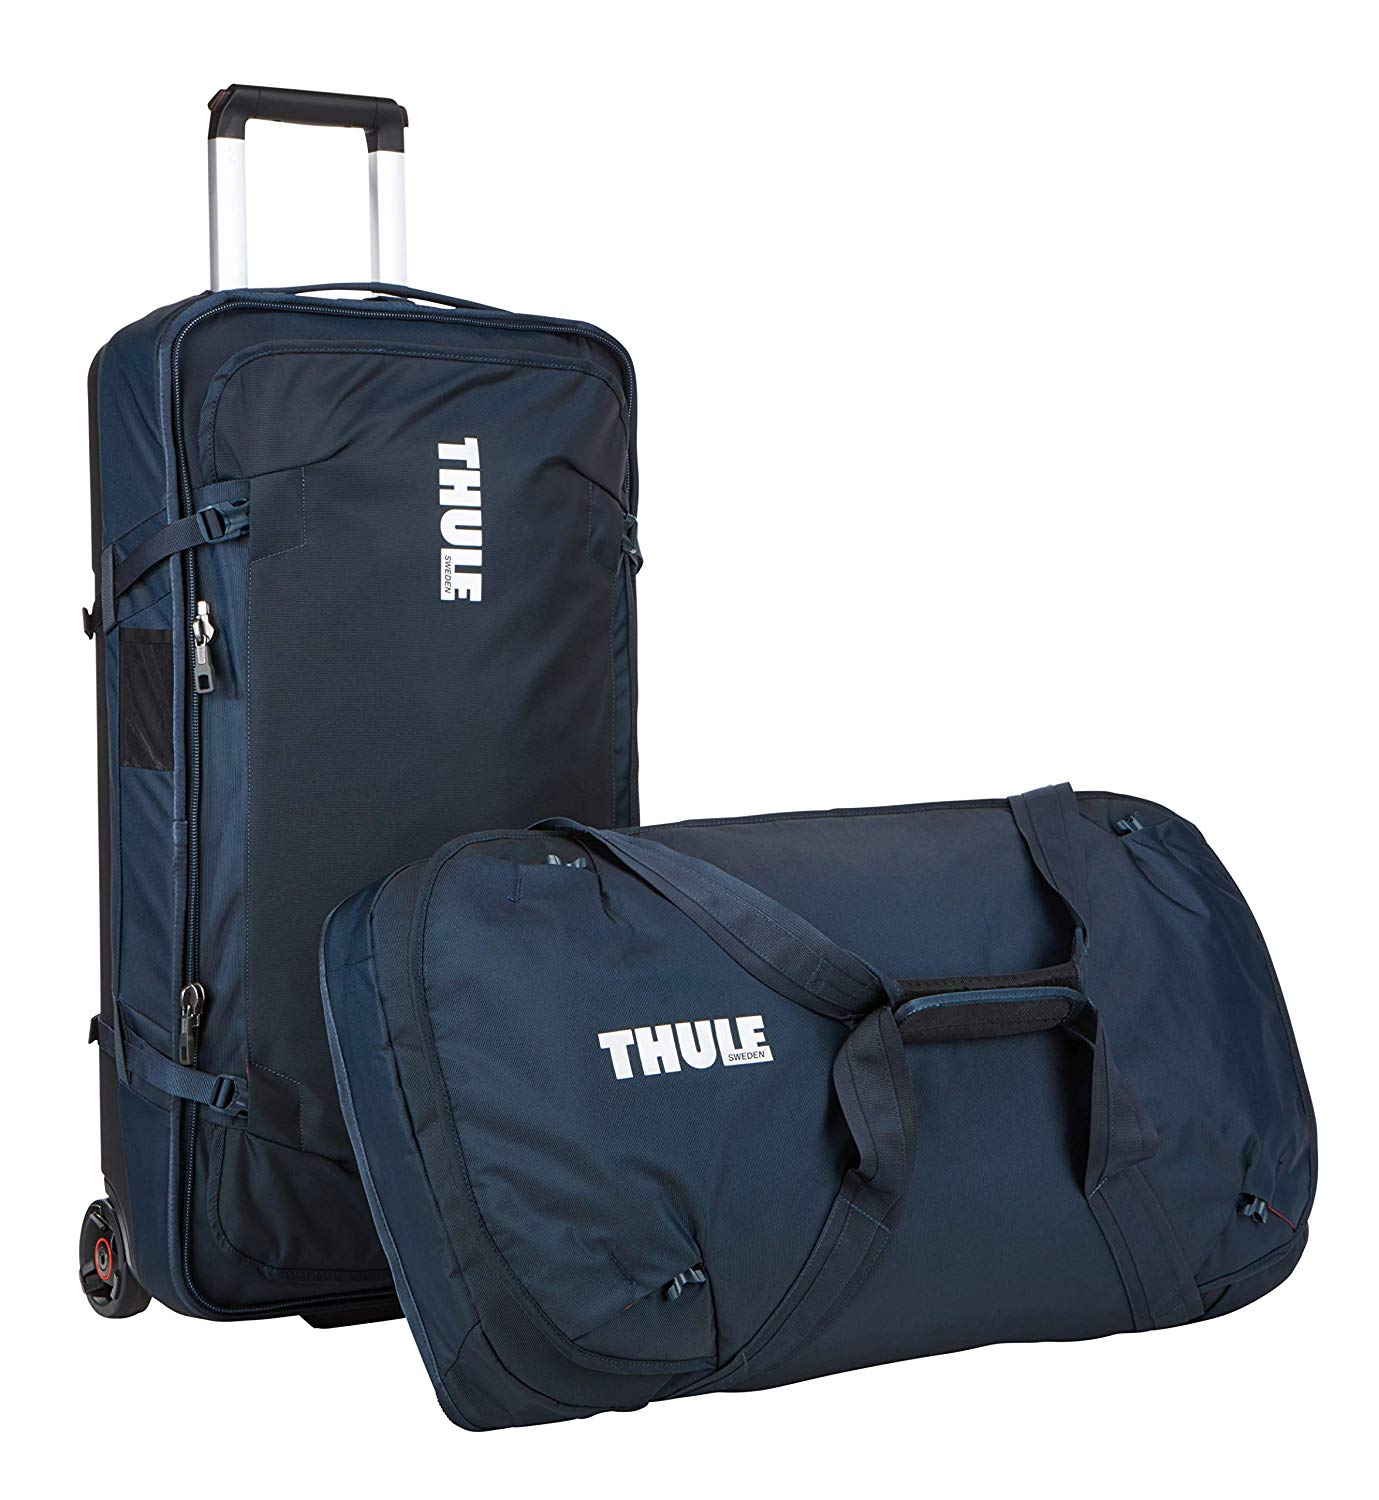 Our Thule Luggage: Thule Subterra Rolling Luggage, 30""